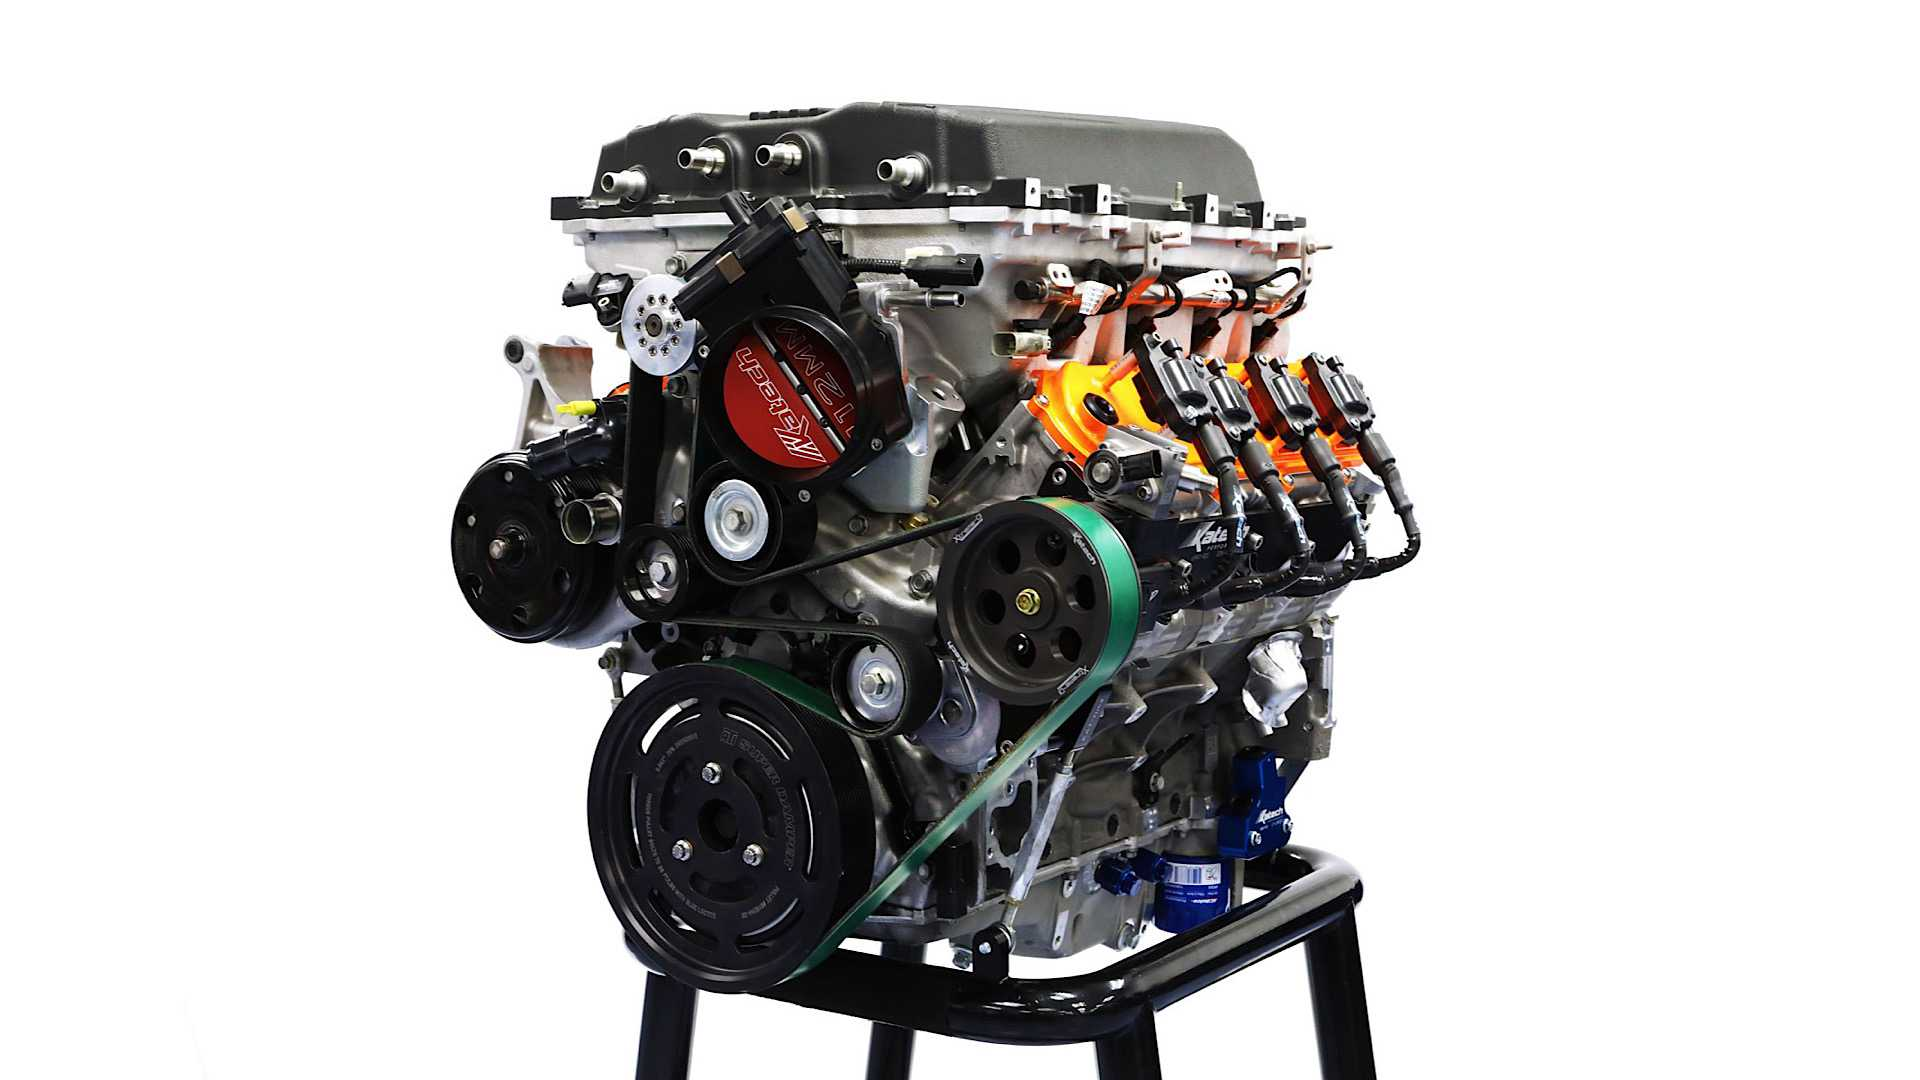 New Chevy LT5 Crate Engine Develops 1,159 HP And 1,063 LB-FT